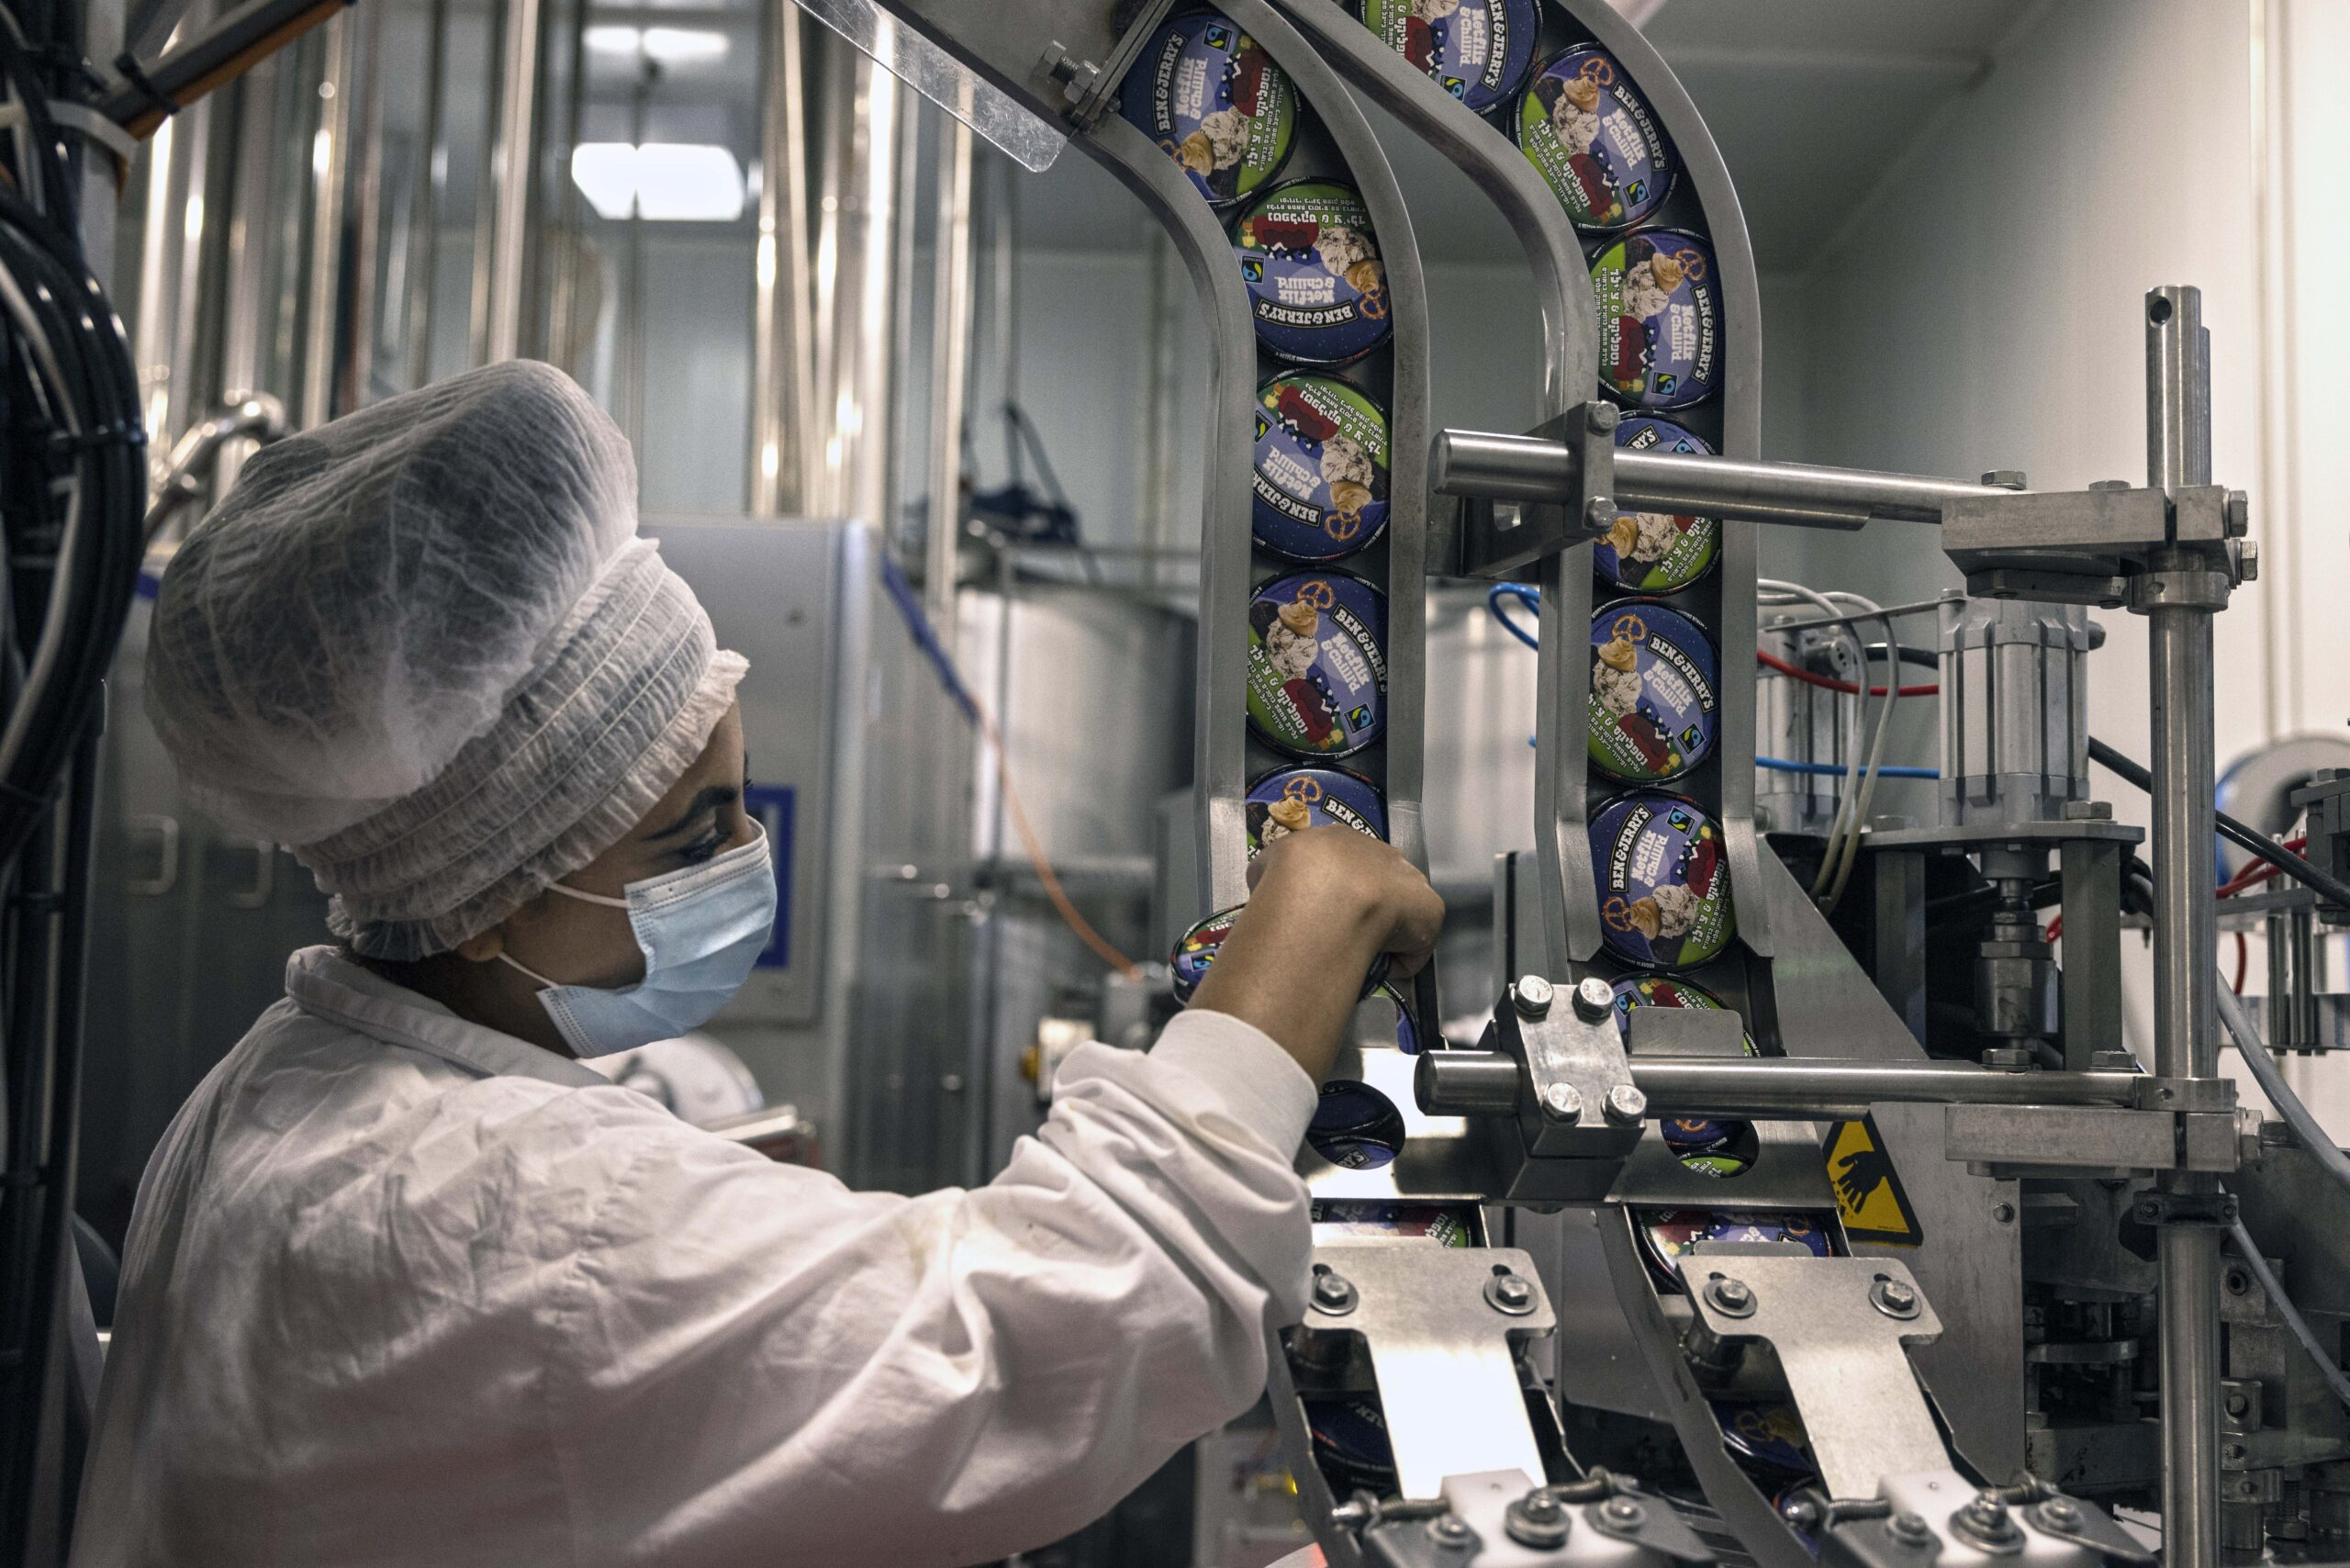 A worker at the Ben & Jerry's ice cream factory in Israel. (Photo/RNS-AP-Tsafrir Abayov)